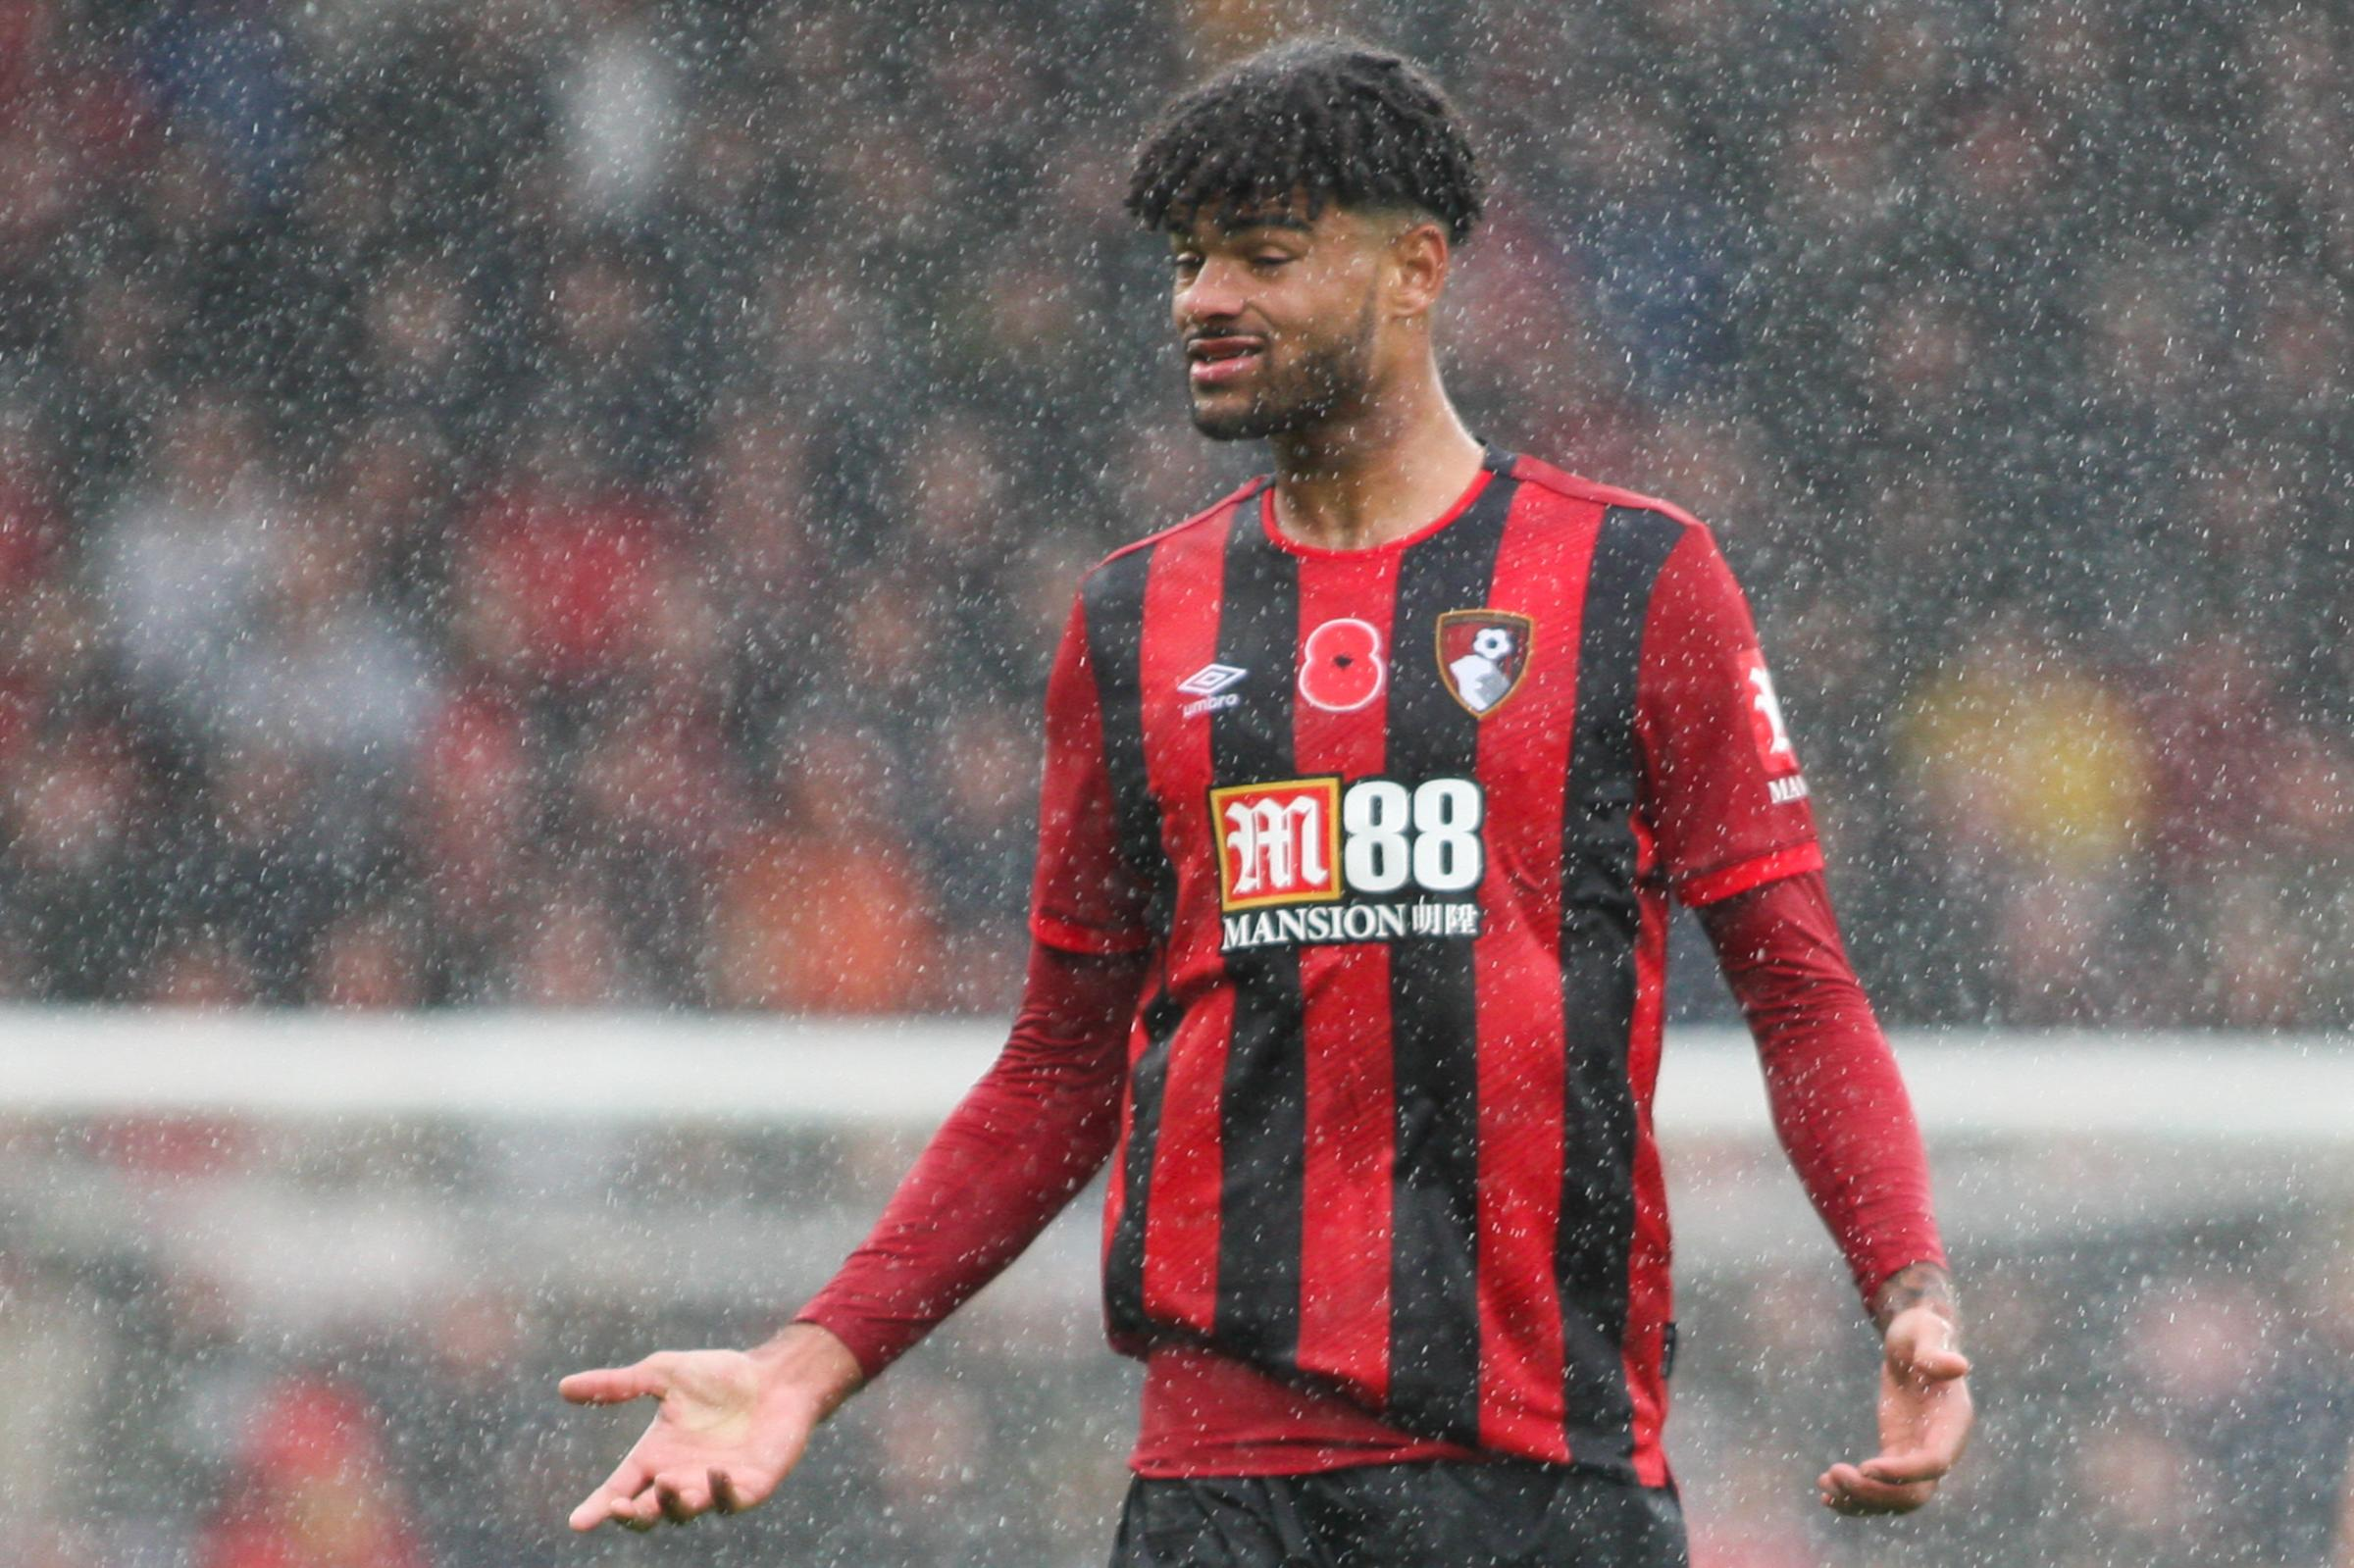 'It is frustrating I haven't got my debut yet but that is just how it is' - AFC Bournemouth star Philip Billing left out of Denmark squad